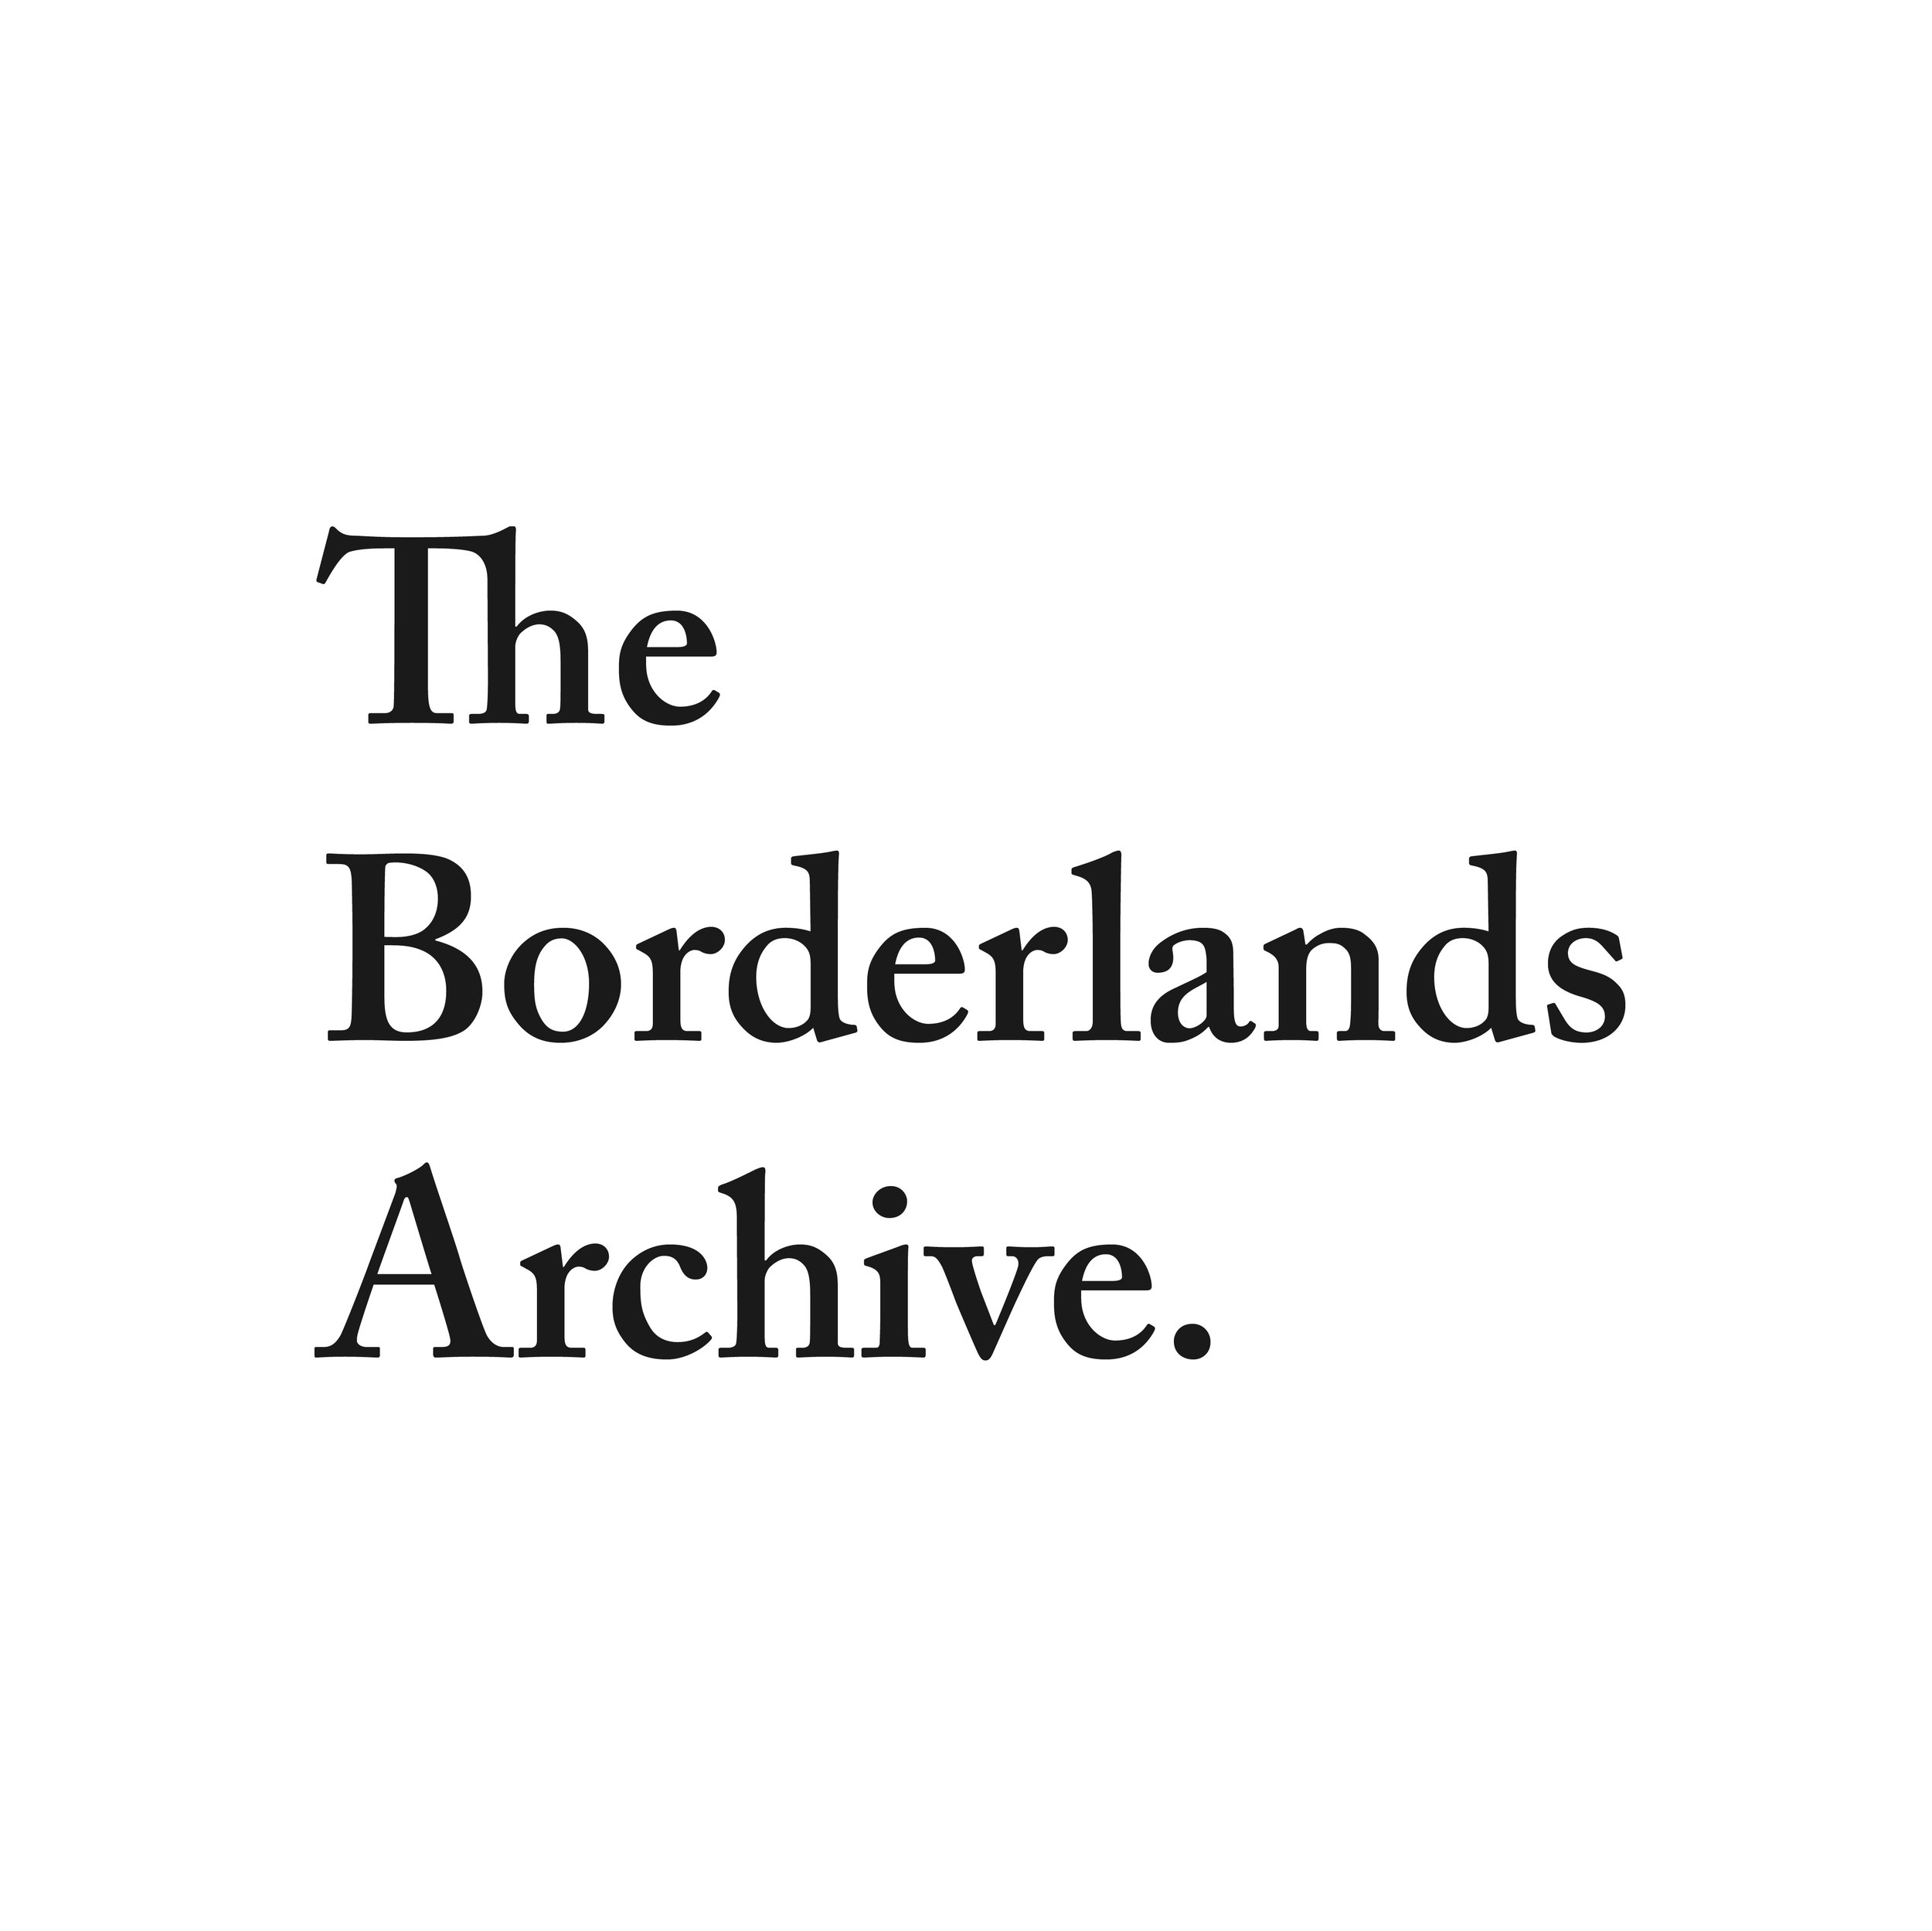 The Borderlands Archive